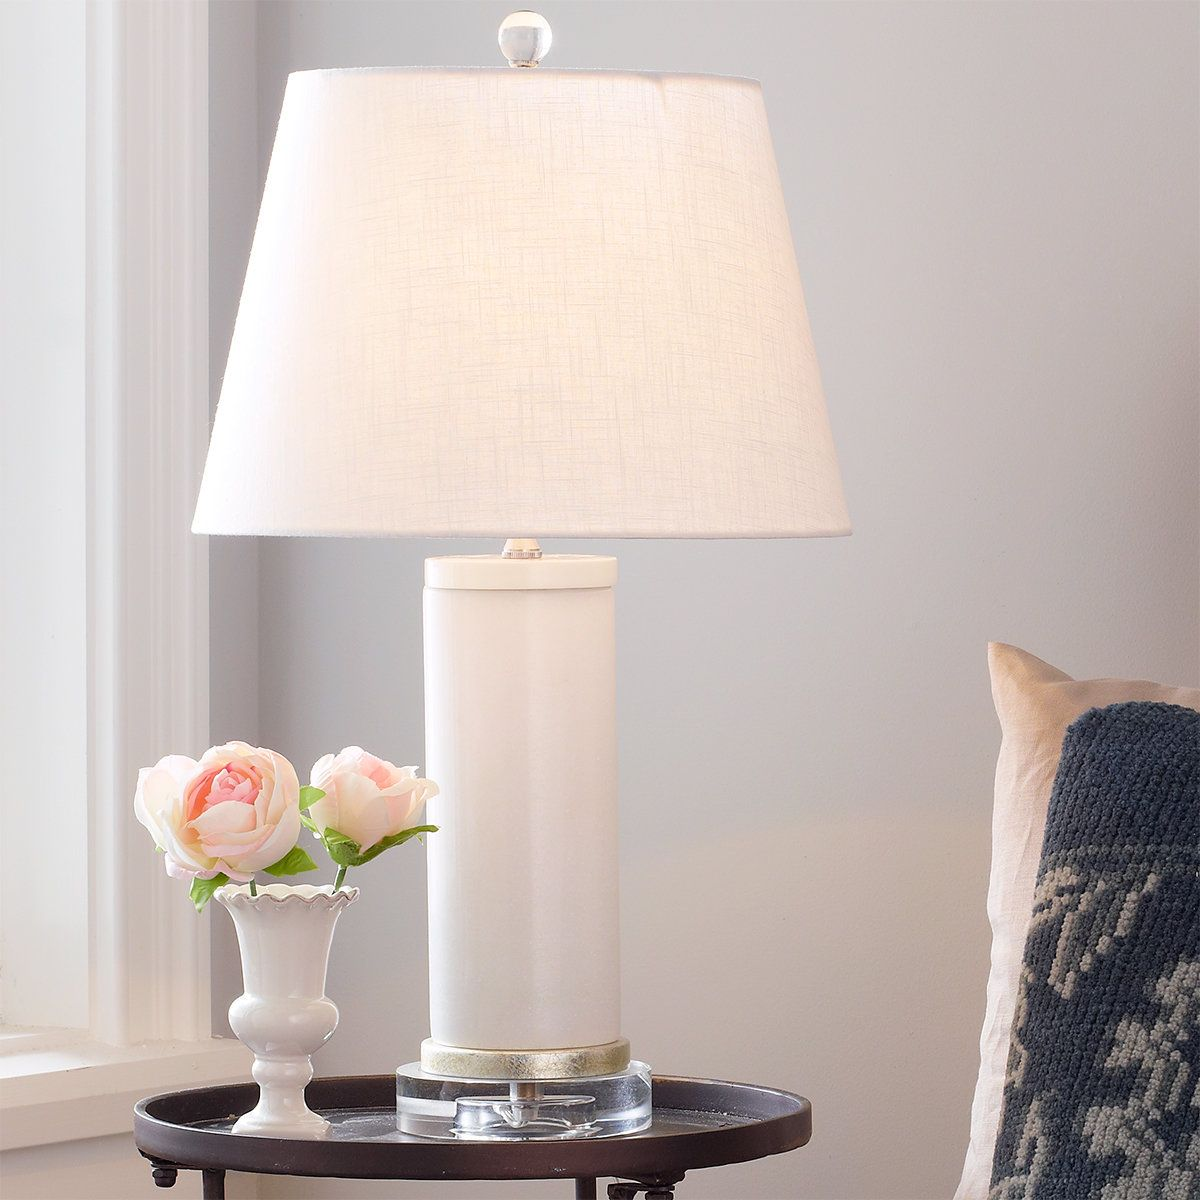 White Jade Cylinder Table Lamp Table Lamp Unique Table Lamps Table Lamp Design